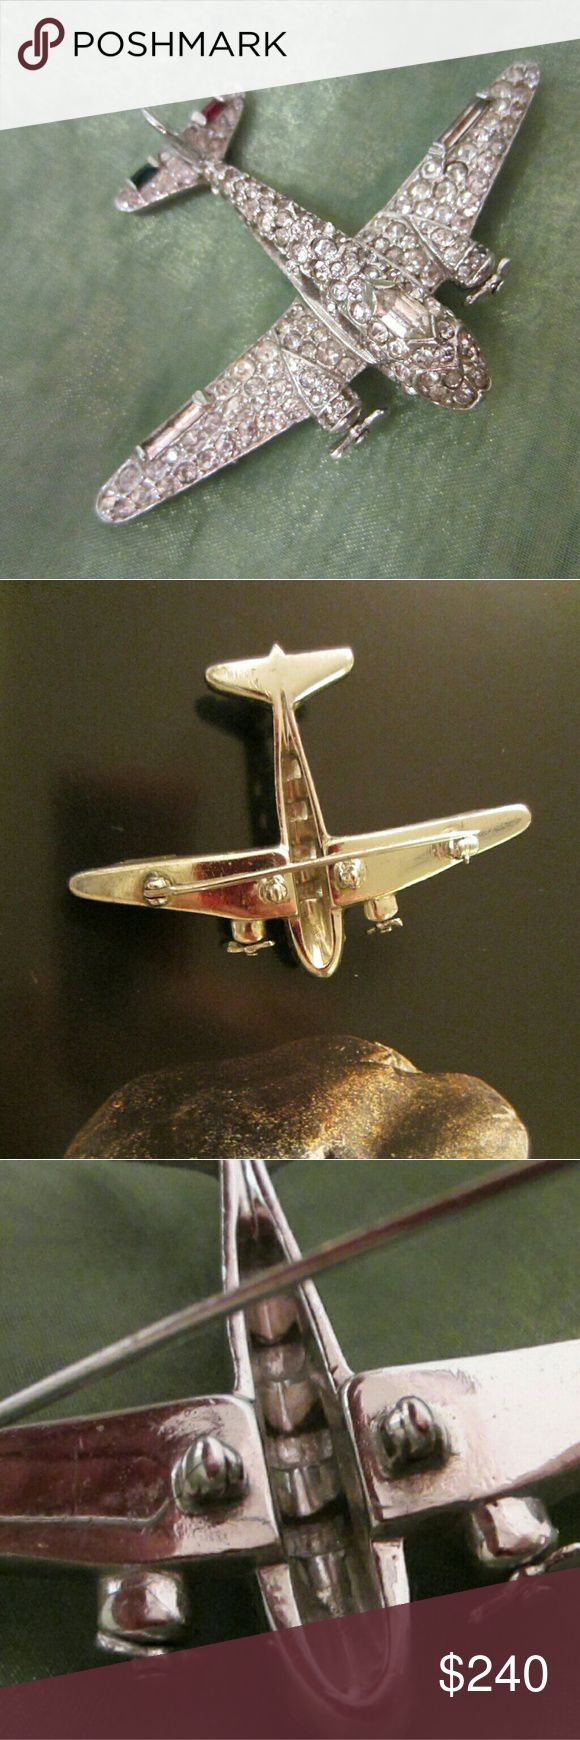 """Trifari silver tone airplane swarovski brooch Trifari silver tone airplane brooch embellished with white  shiny swarovski crystals and a few colored stones. Red and green baguettes.  Excellent condition.  In tact and fab. Probably from post 1940's. About 2"""". It is marked in etch. Propeller moves. This piece is unique not ordinary. Trifari Jewelry Brooches"""